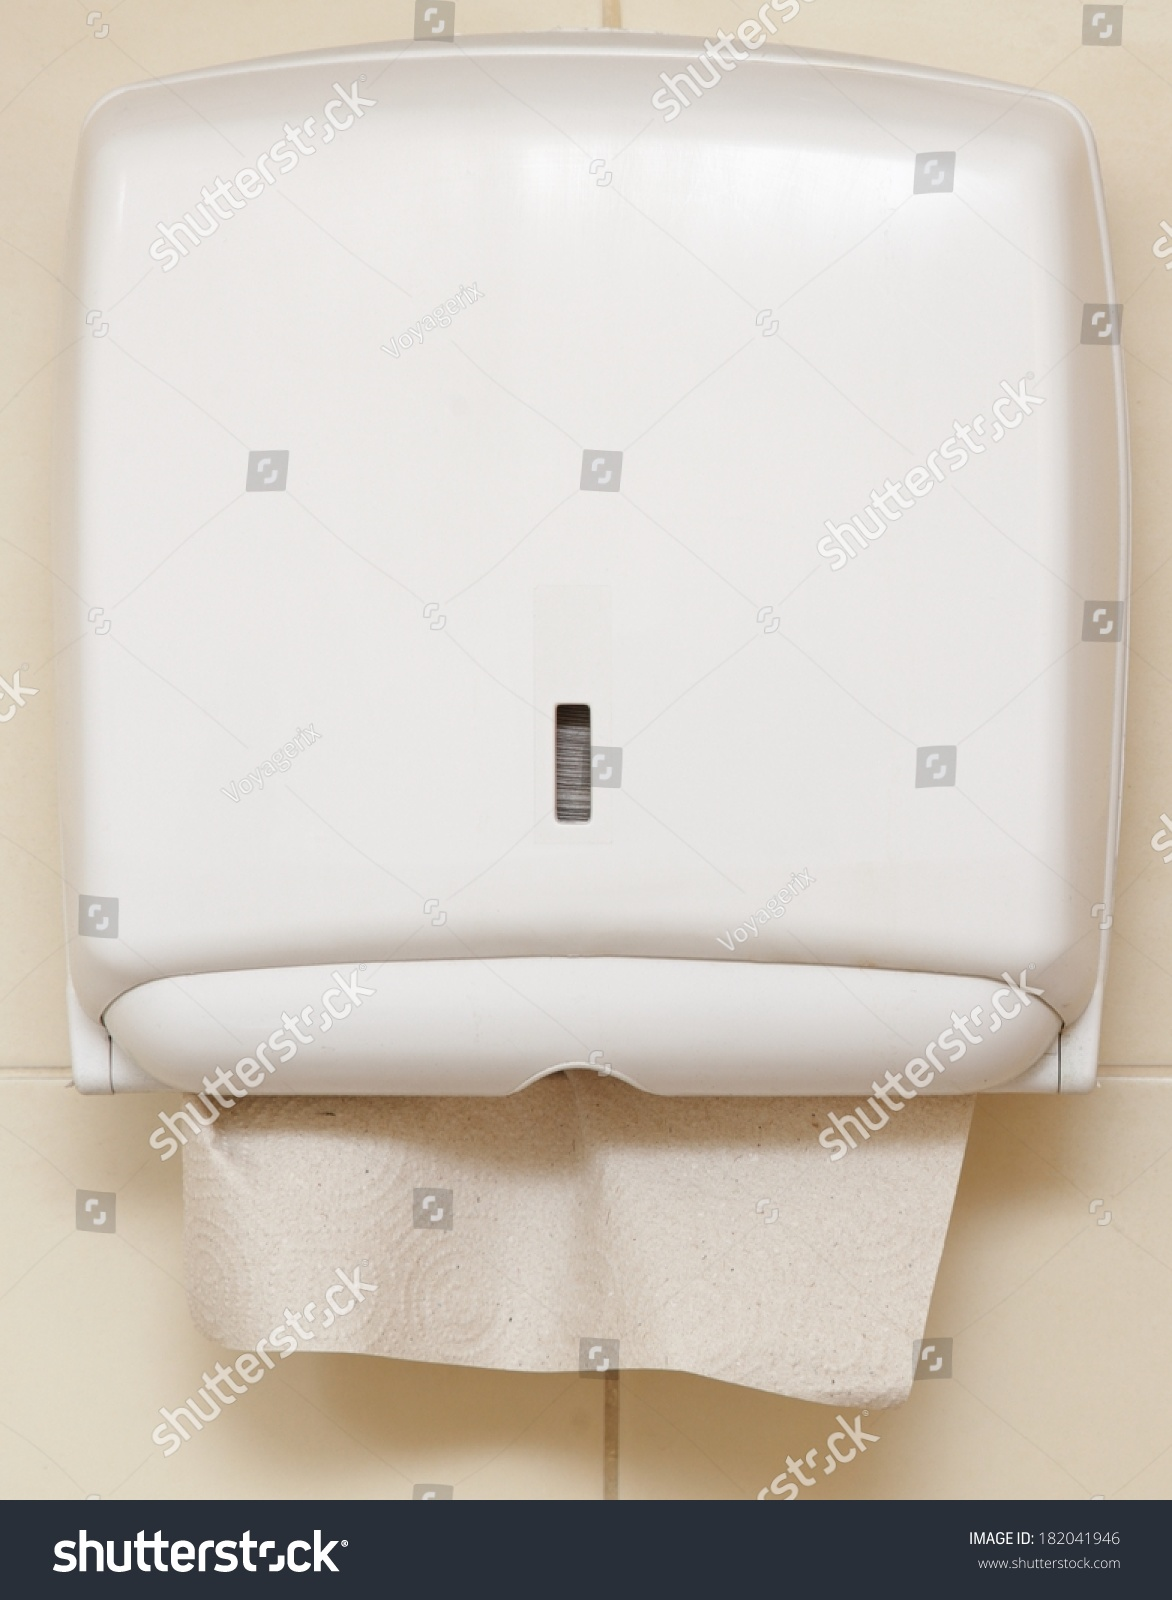 Paper towel dispenser on the wall in the bathroom stock for Wall paper in bathroom